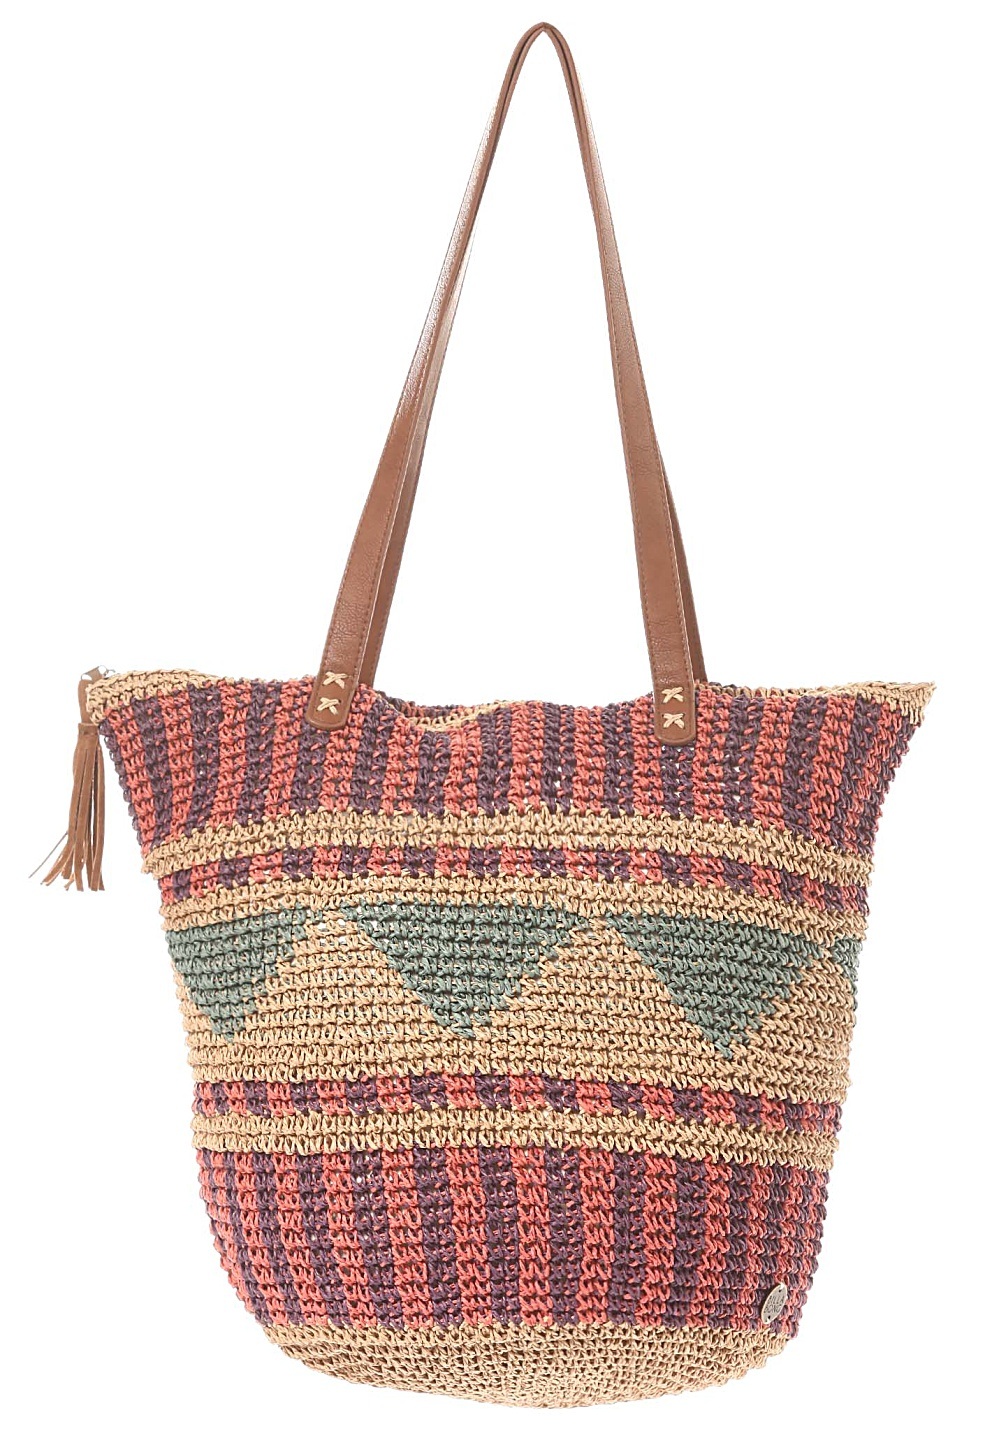 c2b8fa23a3 BILLABONG East of Dover - Bag for Women - Multicolor - Planet Sports